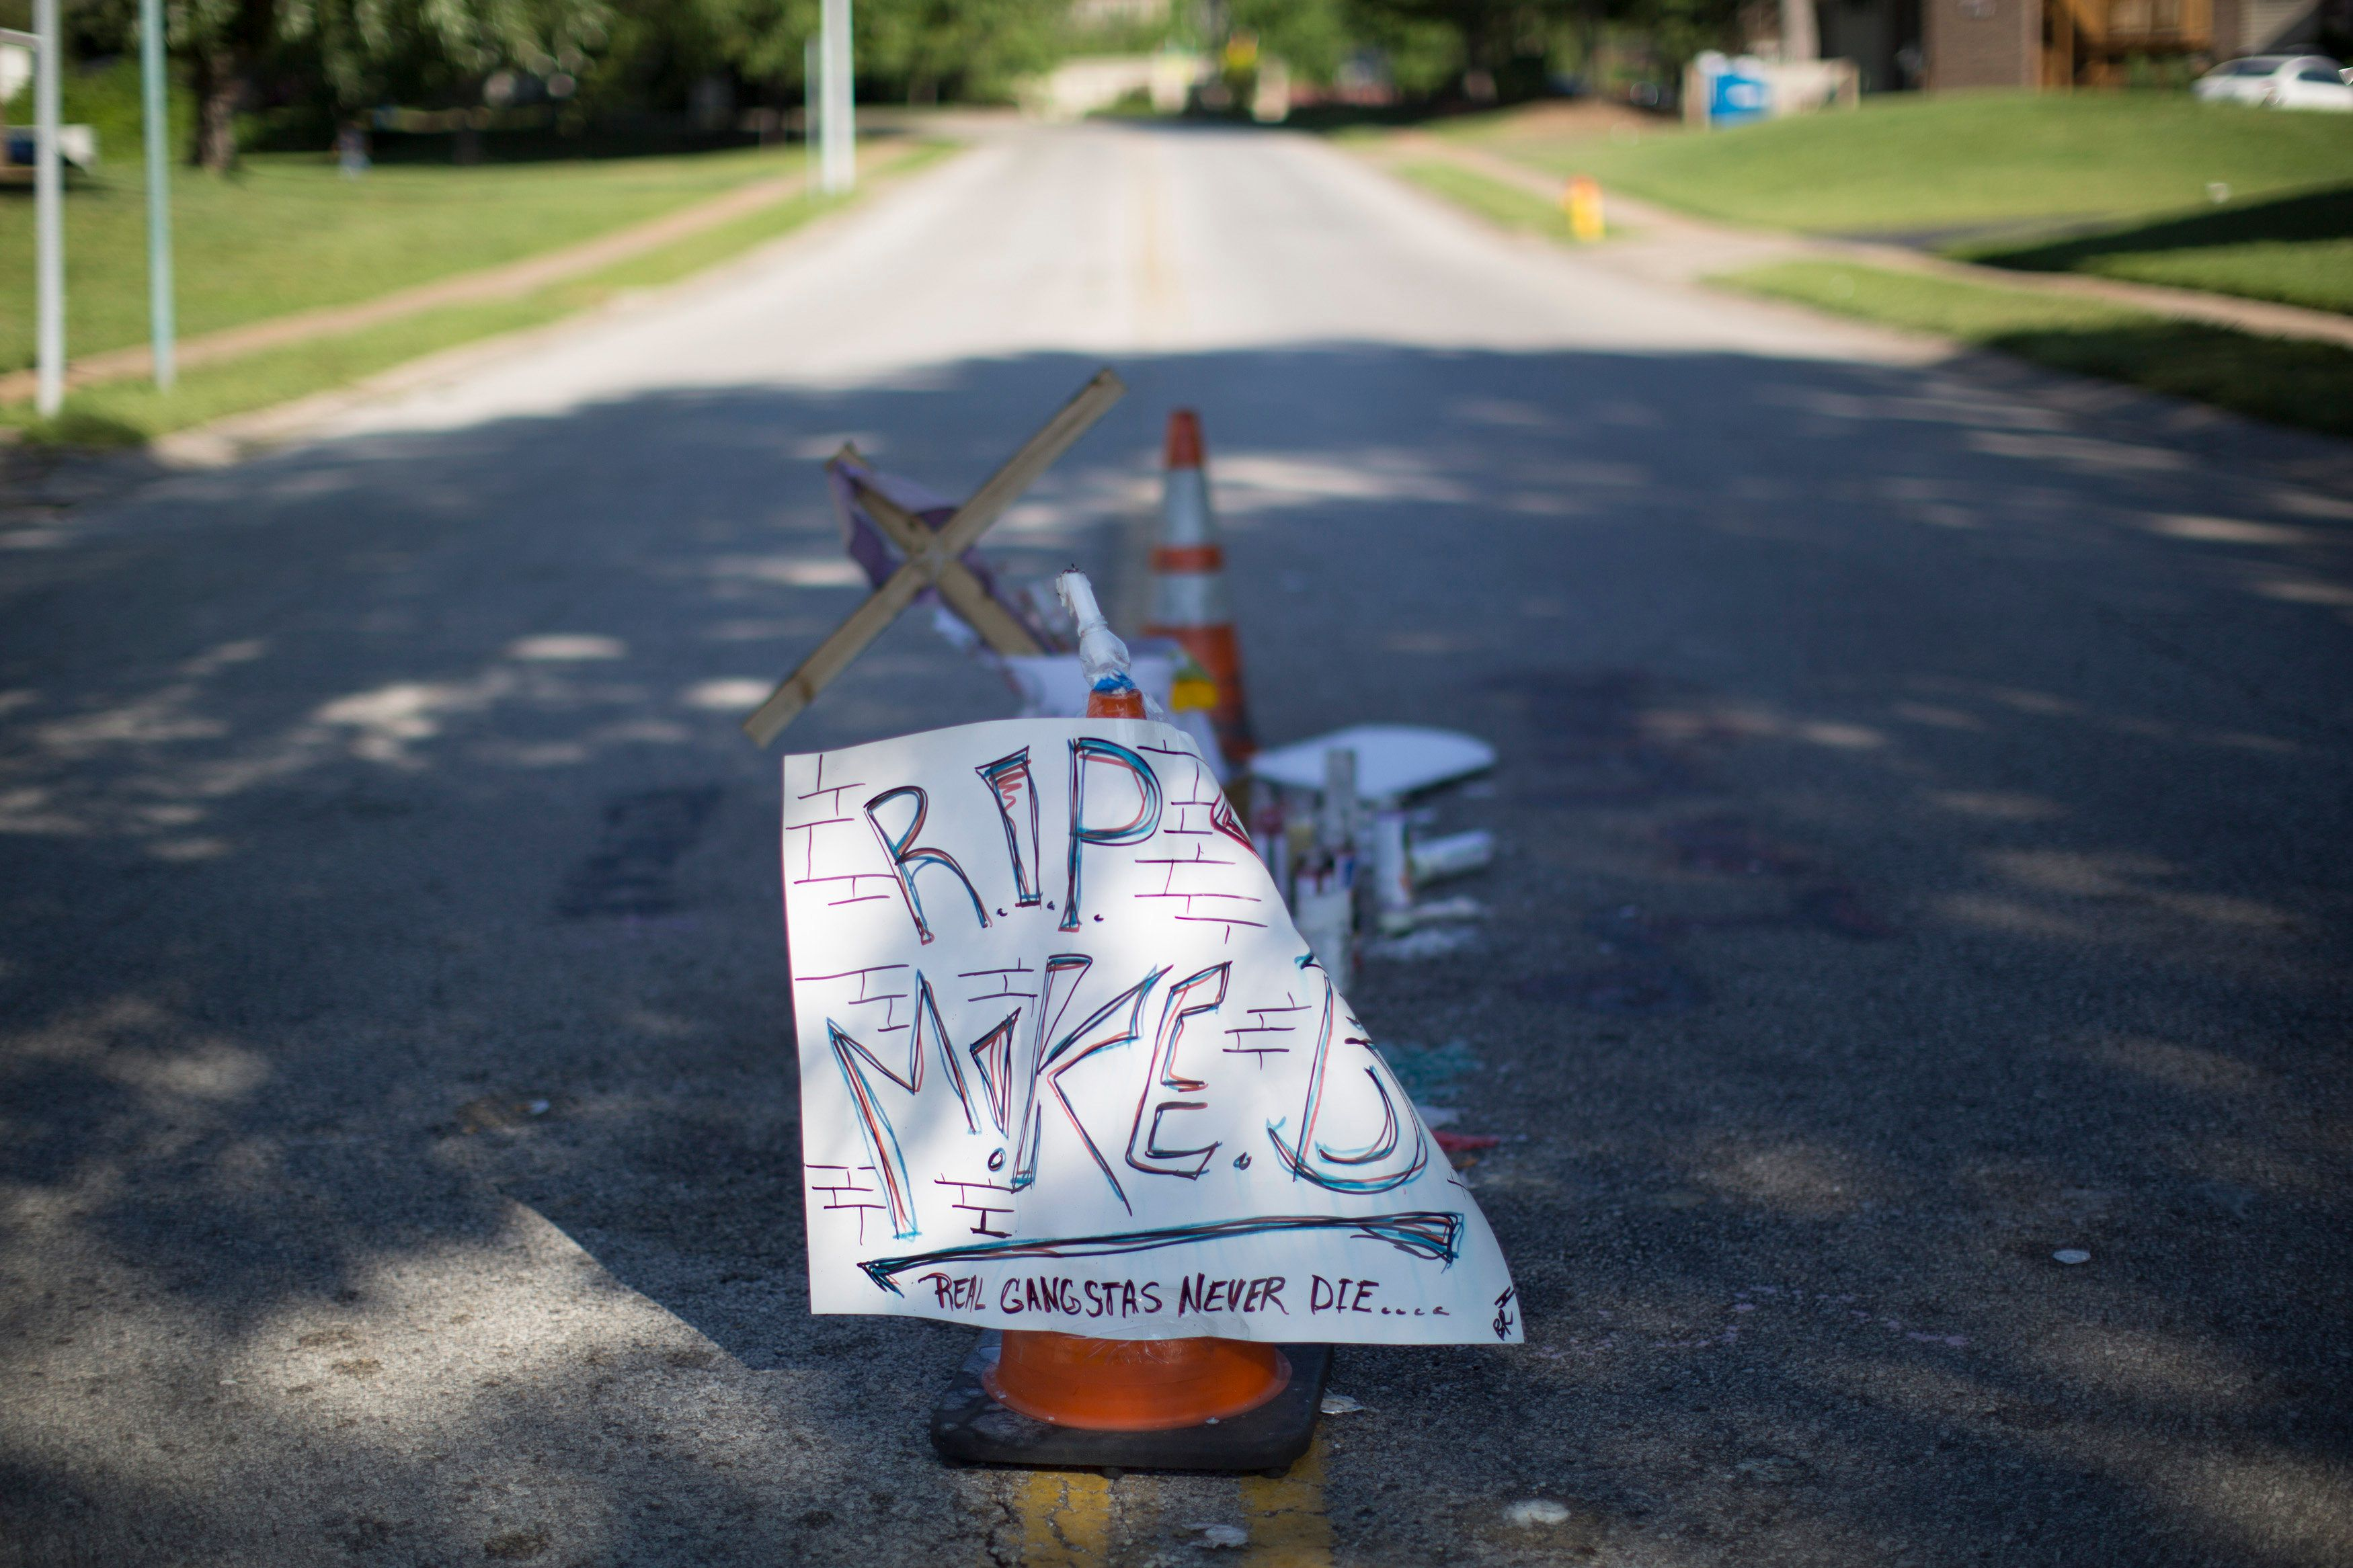 A makeshift memorial is pictured where black teenager Michael Brown was shot to death by police over the weekend in Ferguson, Missouri August 12, 2014. Police said Brown, 18, was shot in a struggle with a gun in a police car but have not said why Brown was in the car. At least one shot was fired during the struggle and then the officer fired more shots before leaving the car, police said. But a witness to the shooting interviewed on local media has said that Brown had been putting his hands up to surrender when he was killed. The FBI has opened a civil rights investigation into the racially charged case and St. Louis County also is investigating. REUTERS/Mario Anzuoni (UNITED STATES - Tags: CRIME LAW)